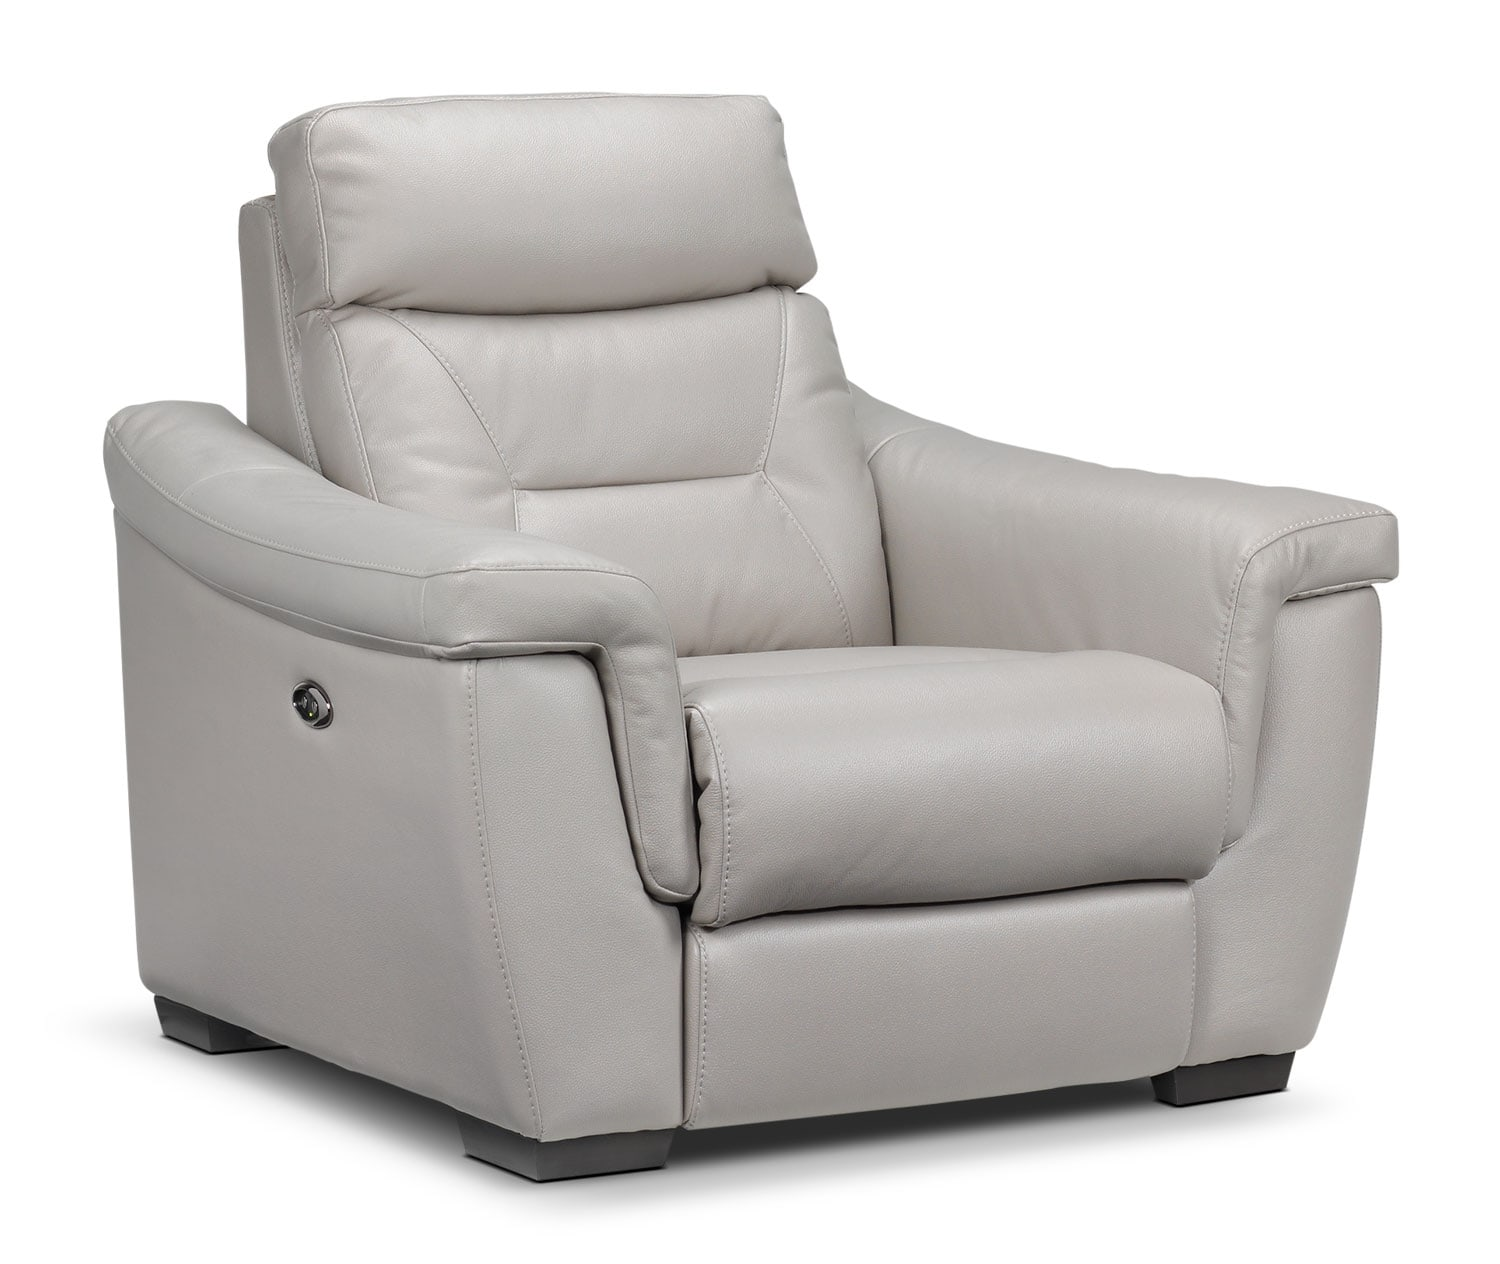 Ralston Power Recliner - Silver-Grey